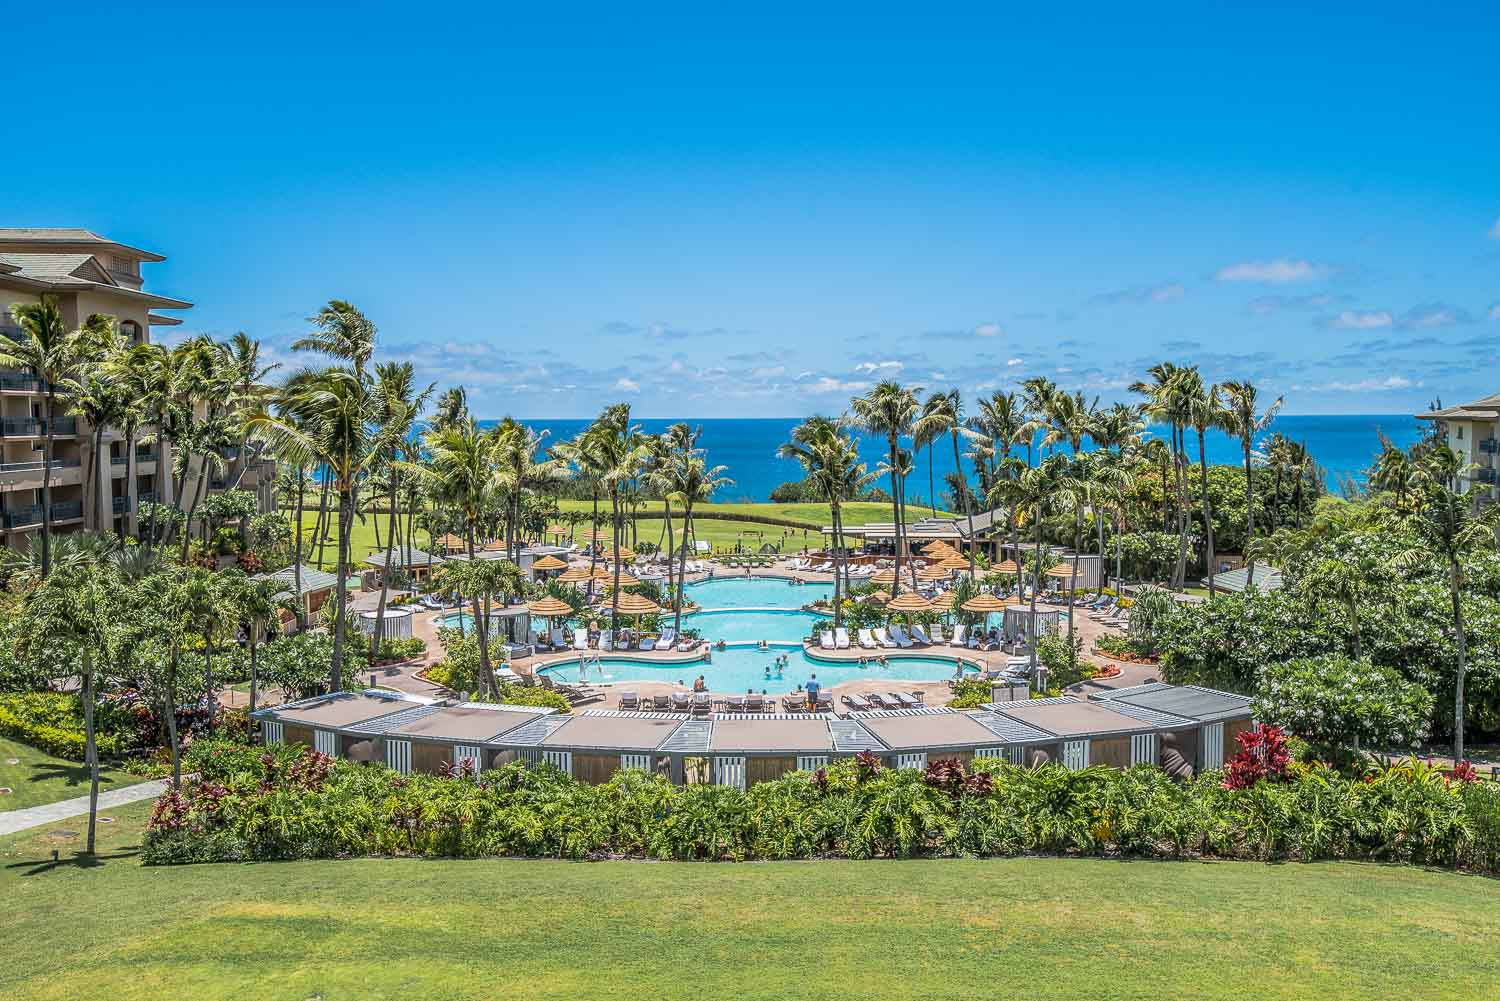 Where to Stay on Maui - Ritz Carlton